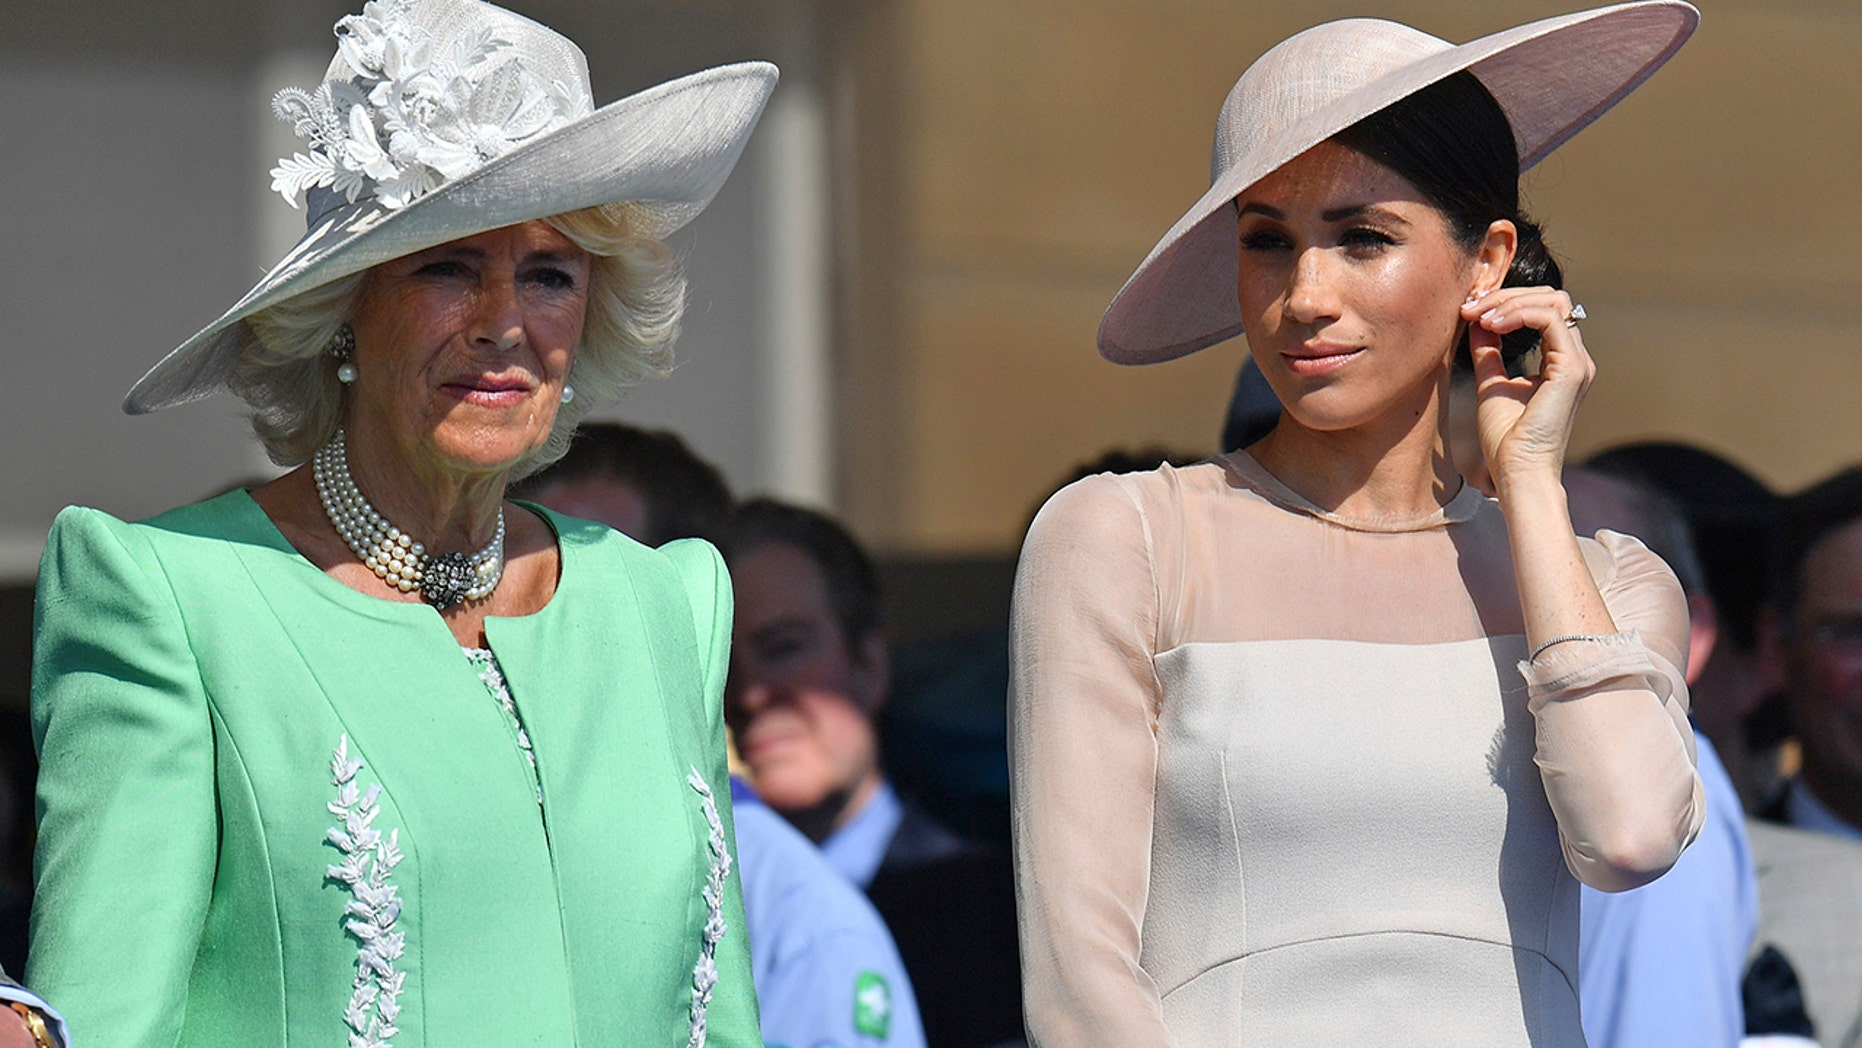 Meghan, the Duchess of Sussex, right, stands with Camilla, the Duchess of Cornwall, during a garden party at Buckingham Palace in London, Tuesday May 22, 2018. The event is part of the celebrations to mark the 70th birthday of Prince Charles.